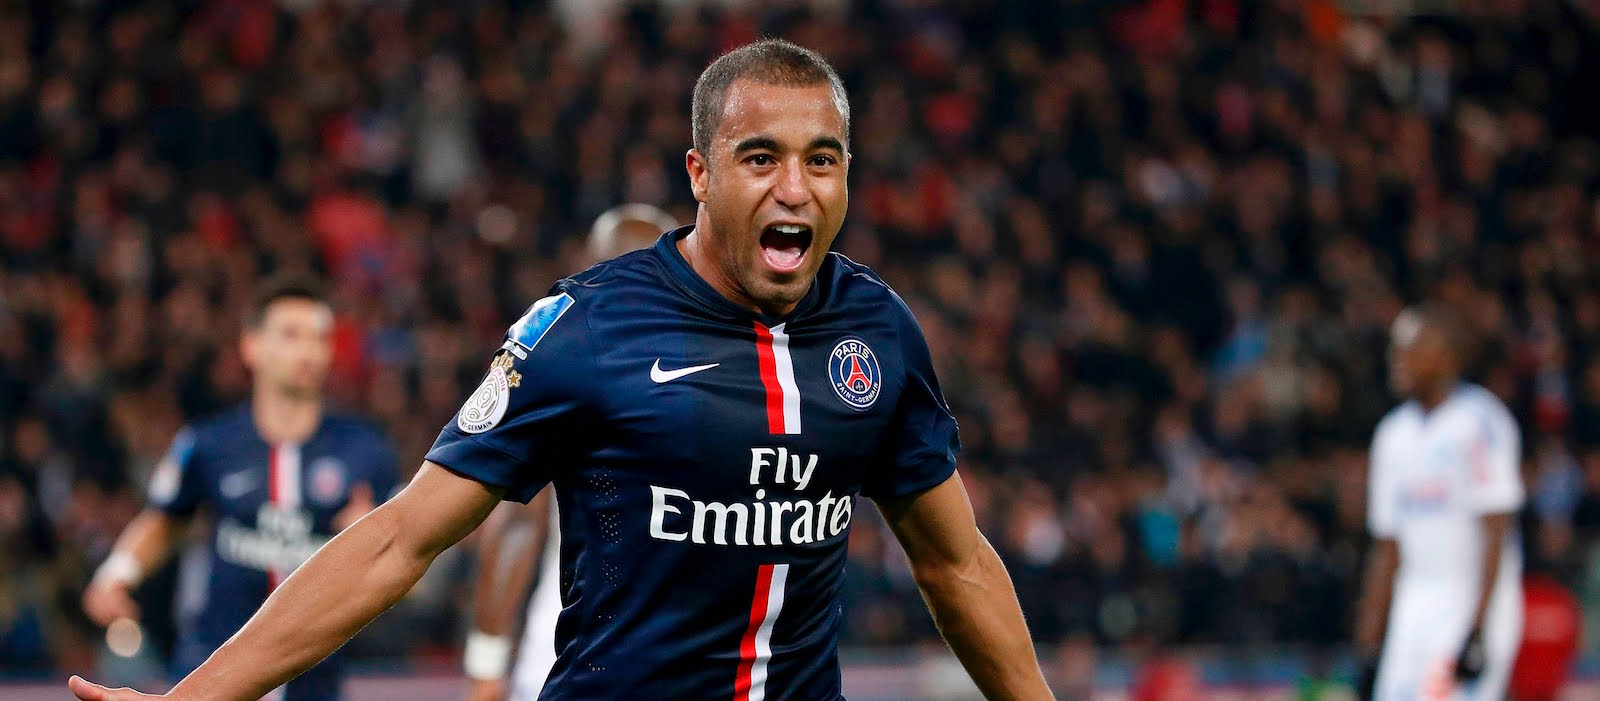 Manchester United reignite interest in PSG's Lucas Moura, 5 years after coming close to joining Reds